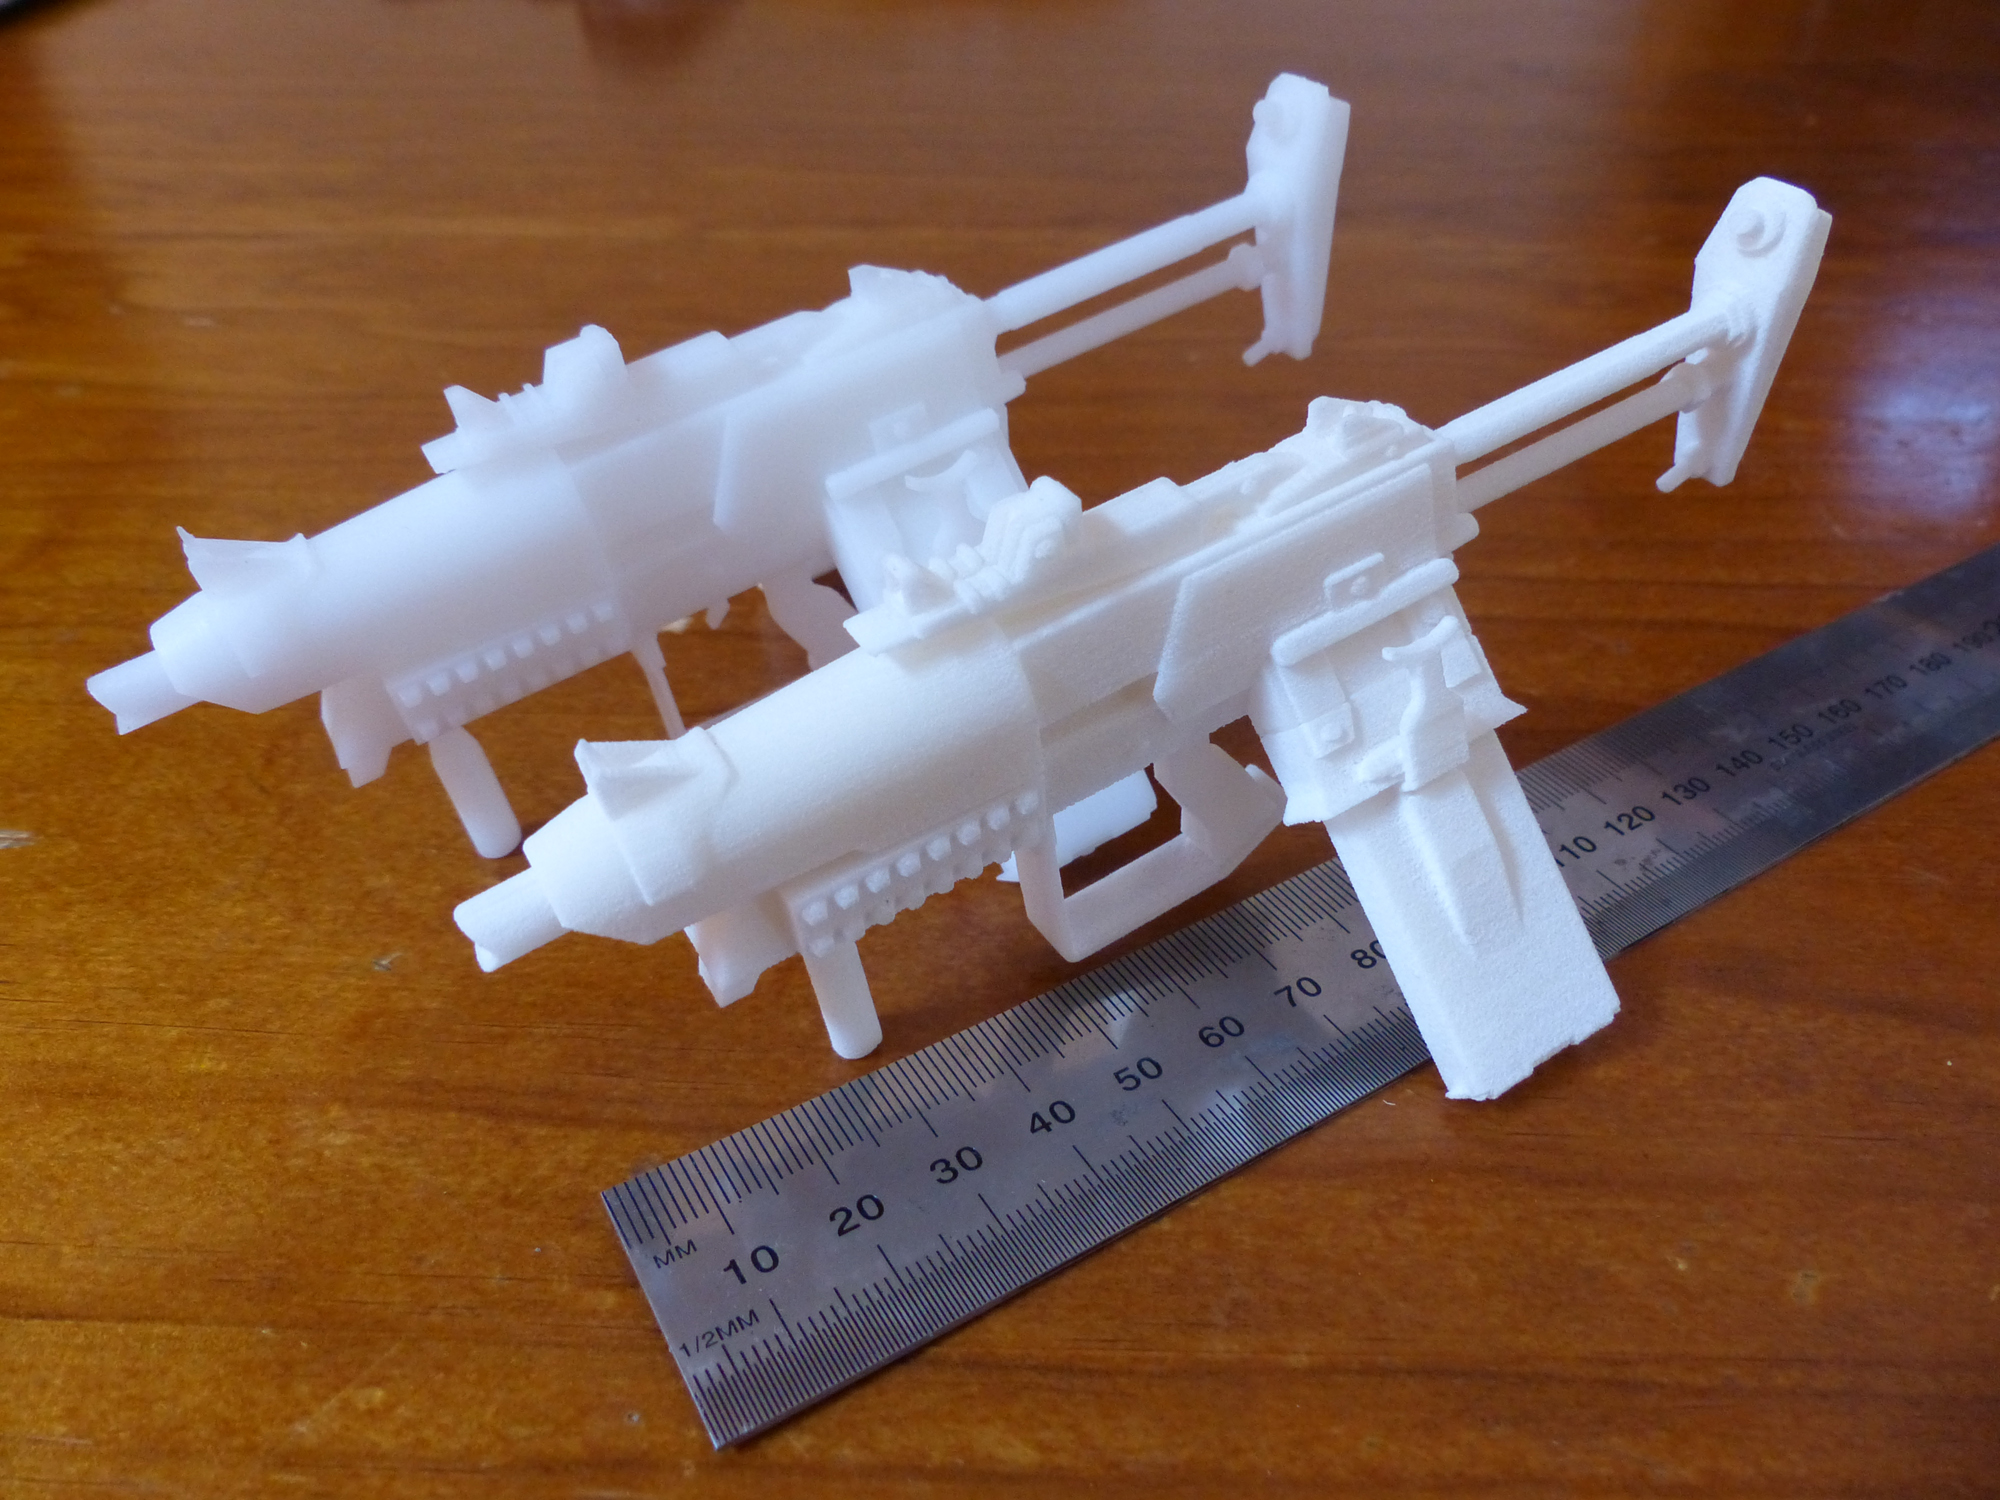 Miniature 'Slagga' Printed in SLA resin and SLS nylon.